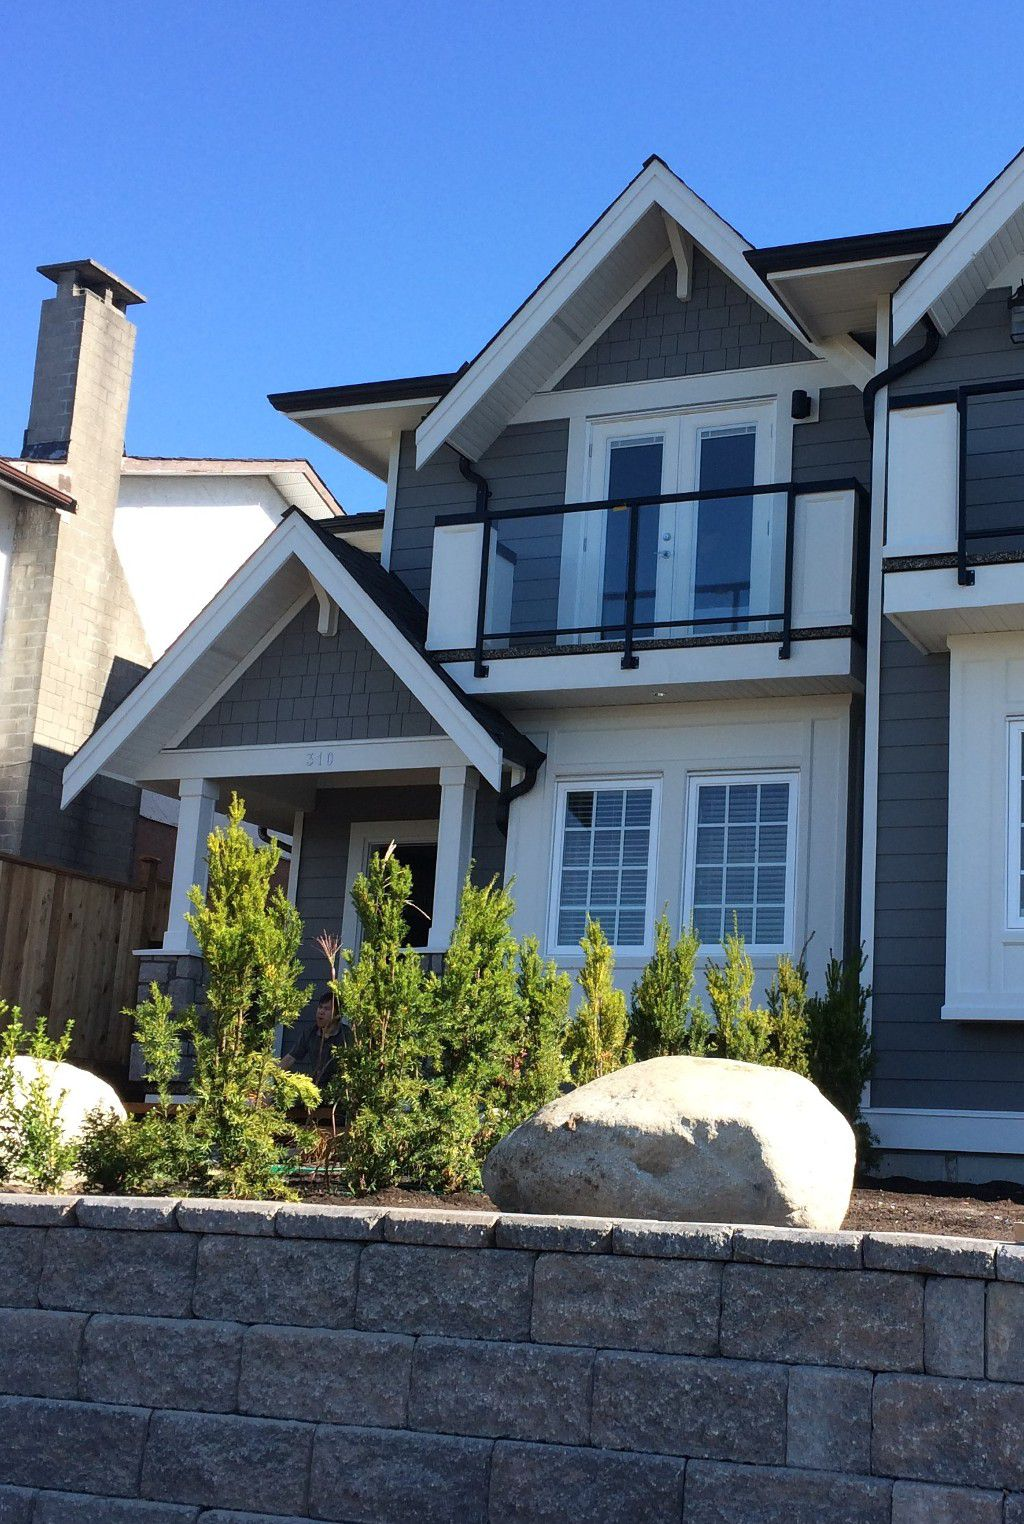 Main Photo: 1 312 E 5 Street in North Vancouver: Lower Lonsdale House 1/2 Duplex for sale : MLS®# R2006821